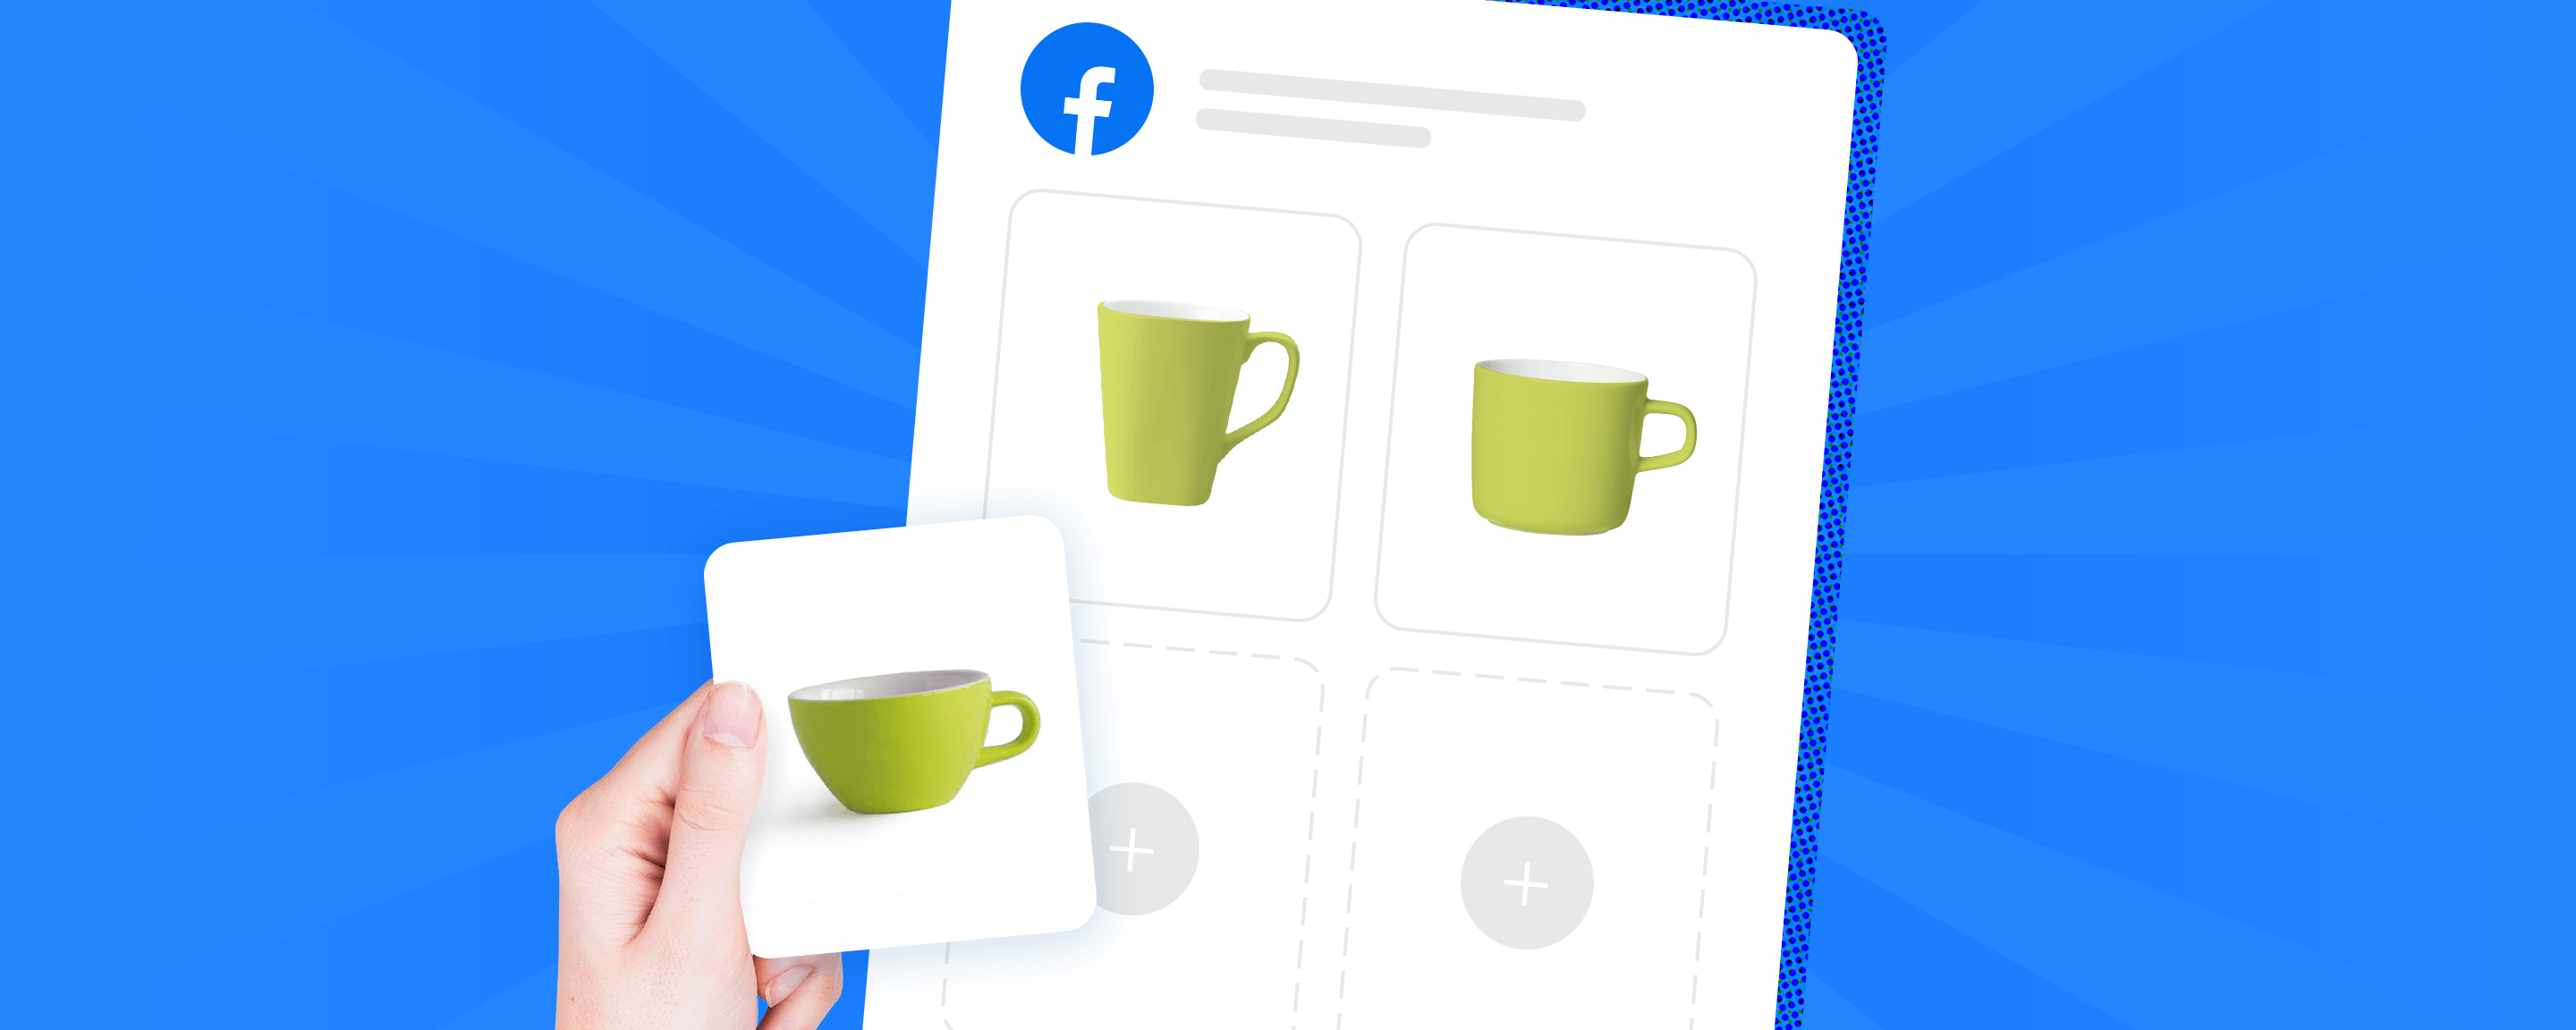 How to Add Products to Facebook Catalog for an Online Business